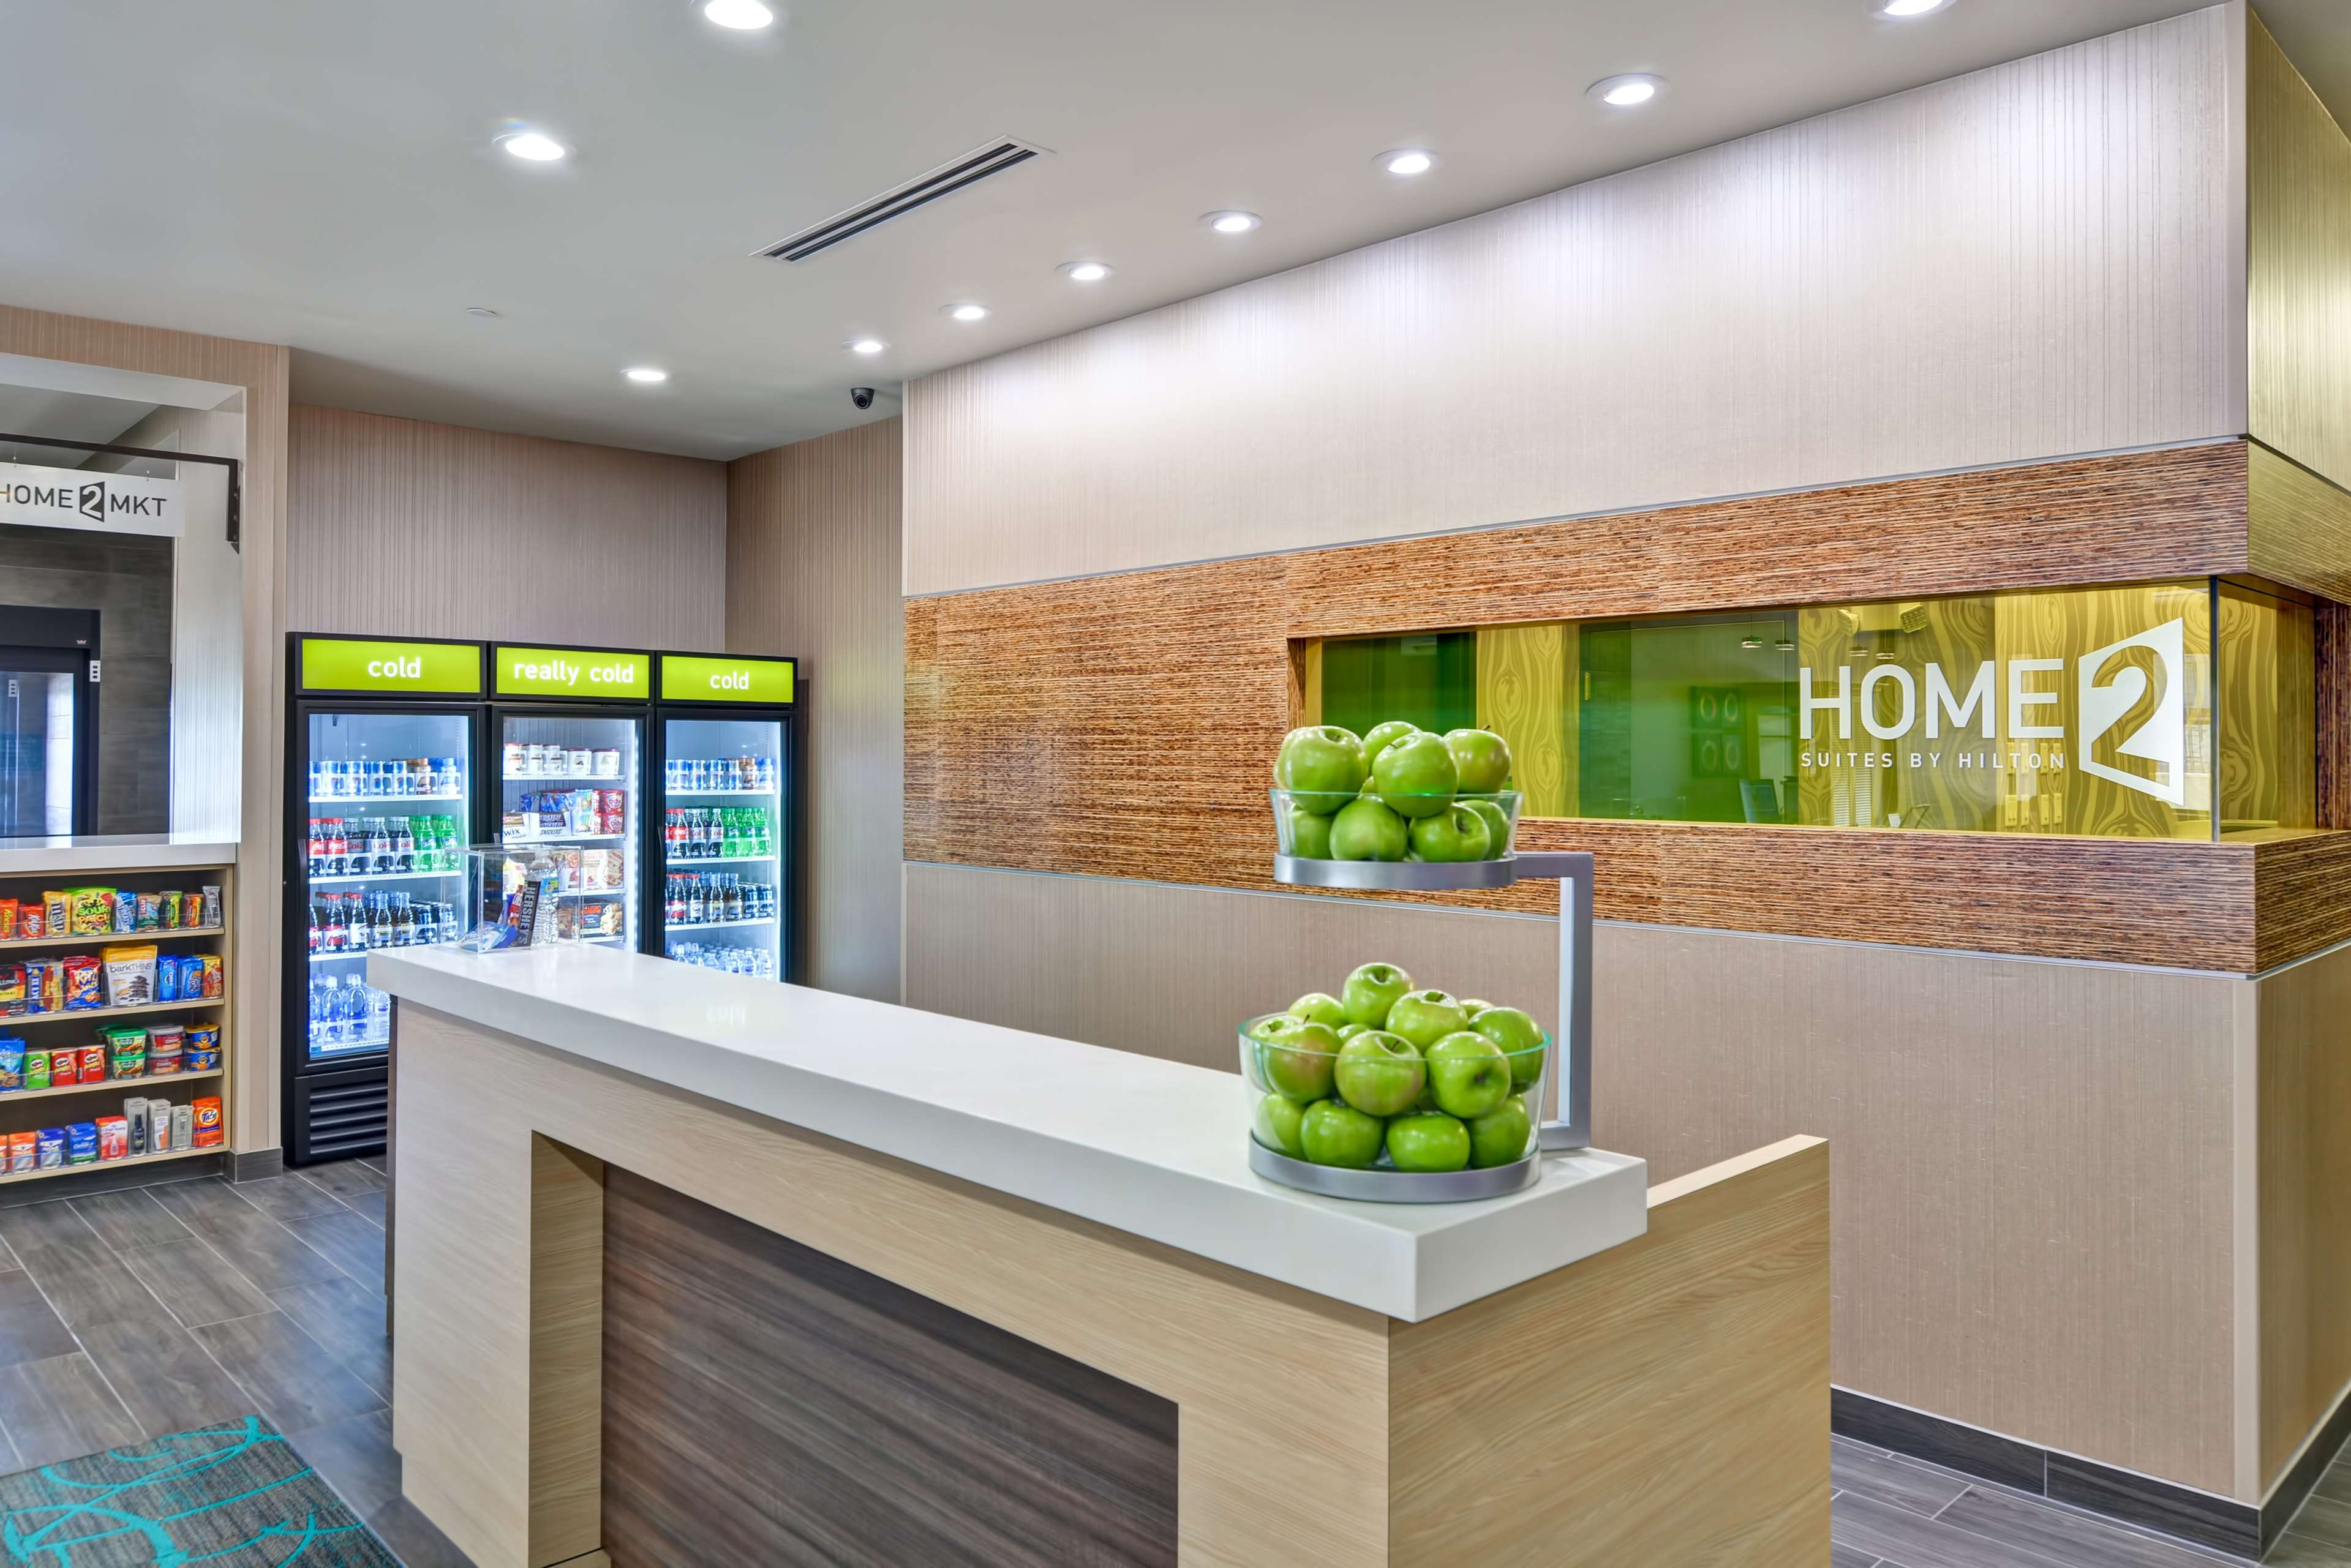 Home2 Suites by Hilton OKC Midwest City Tinker AFB image 5